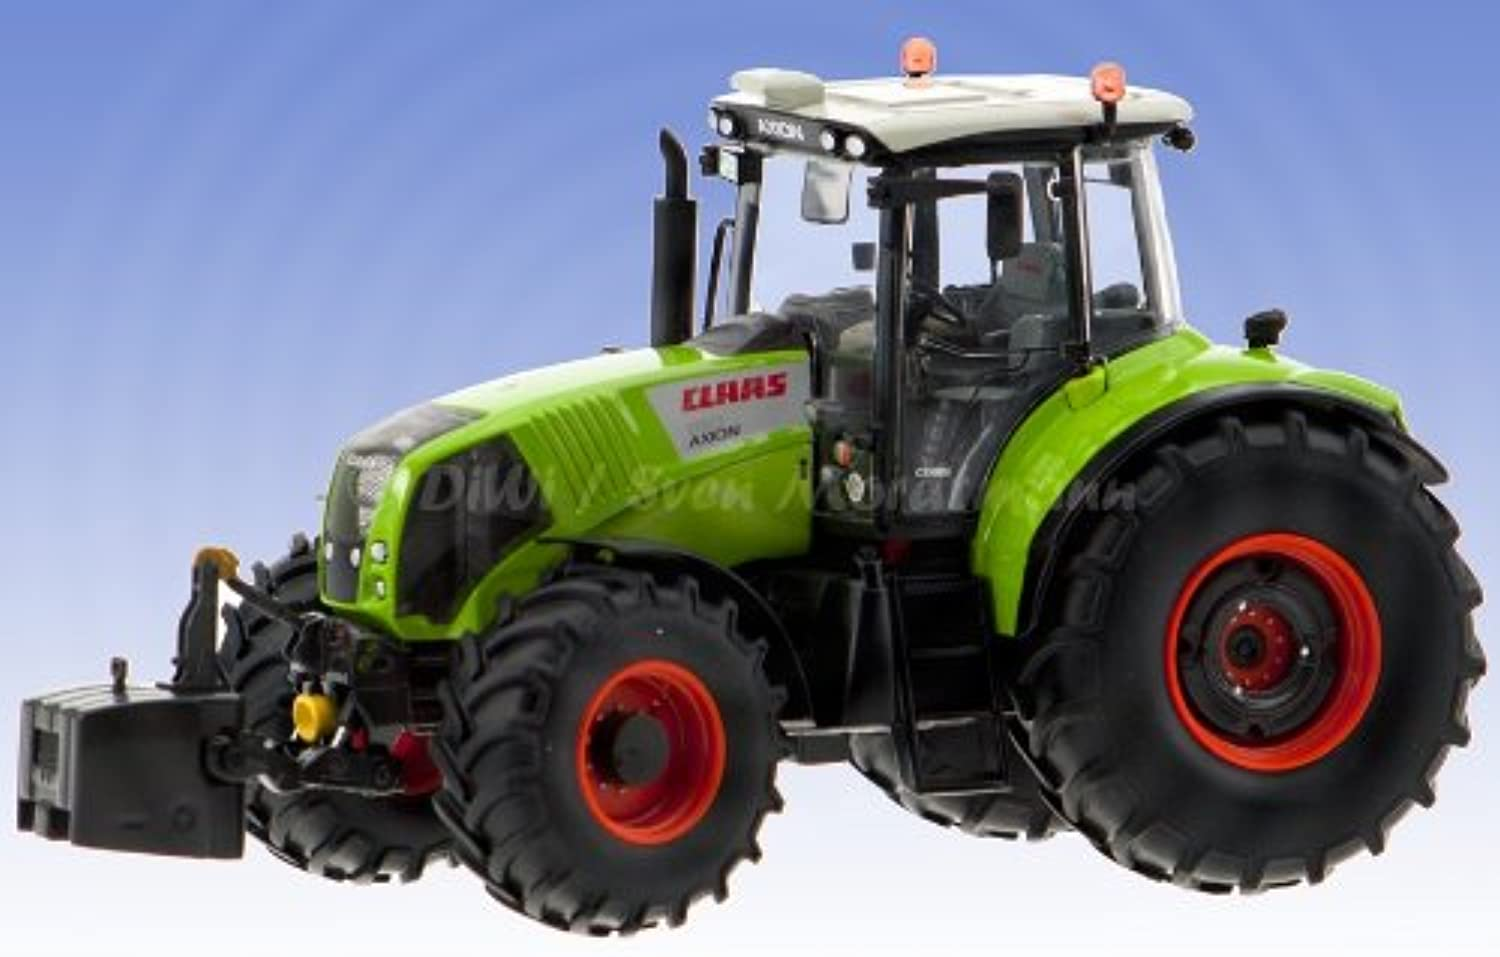 Wiking  Claas Axion 850  GT CC 850  DieCast Model Tractor Toy 1 32 Scale